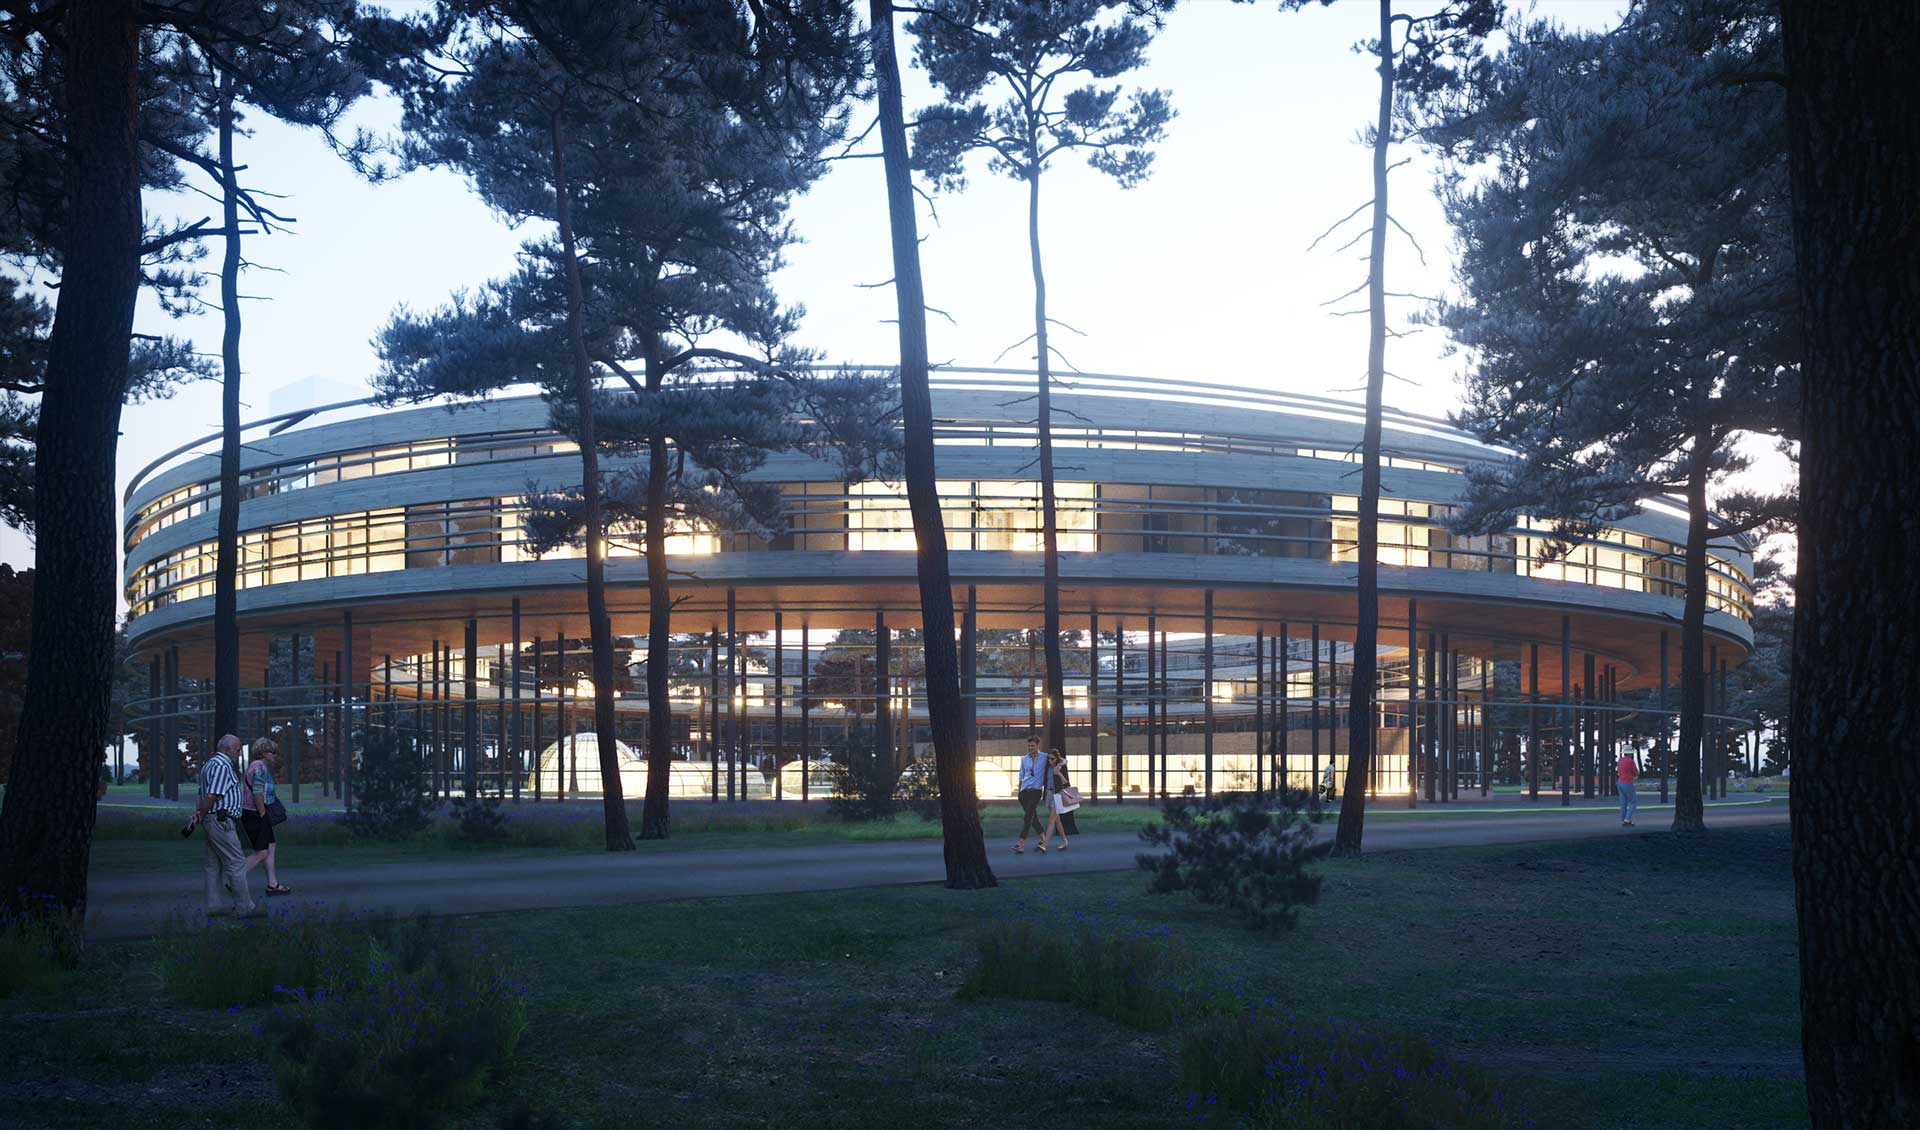 SPA, Curonian Spit